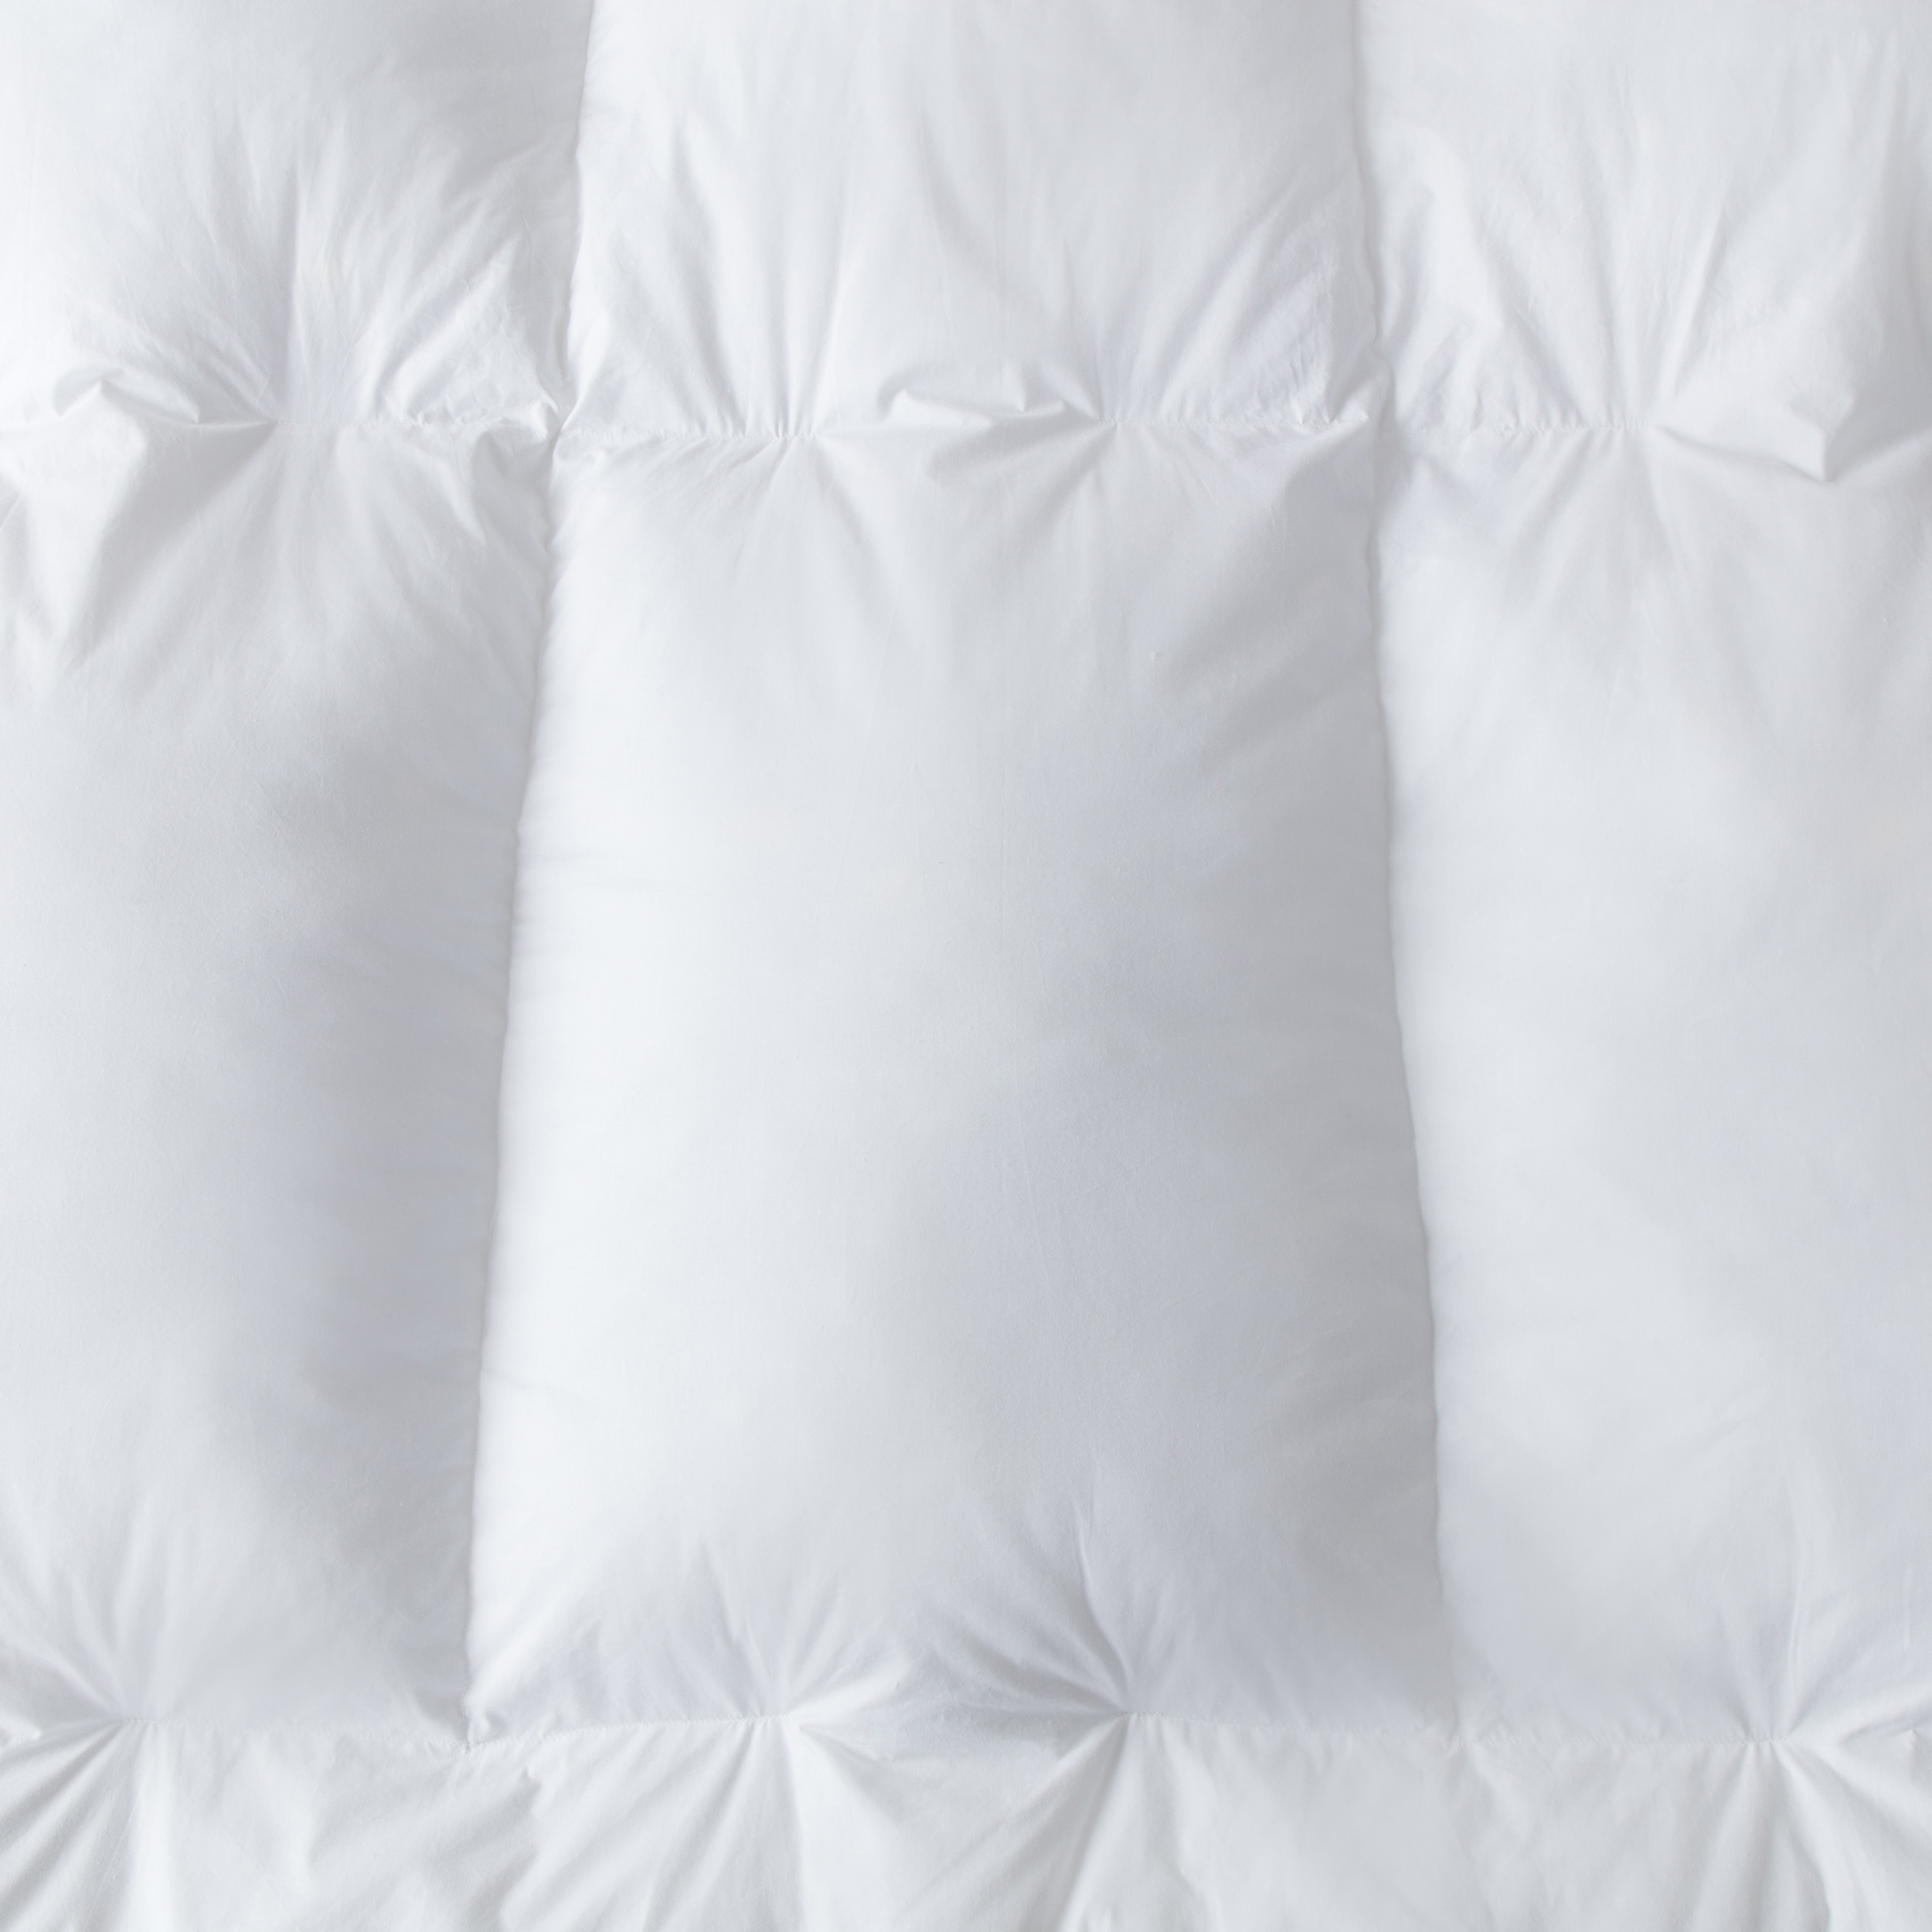 size design memory mattress toppers foam buy to topper where images excellent of full fiber